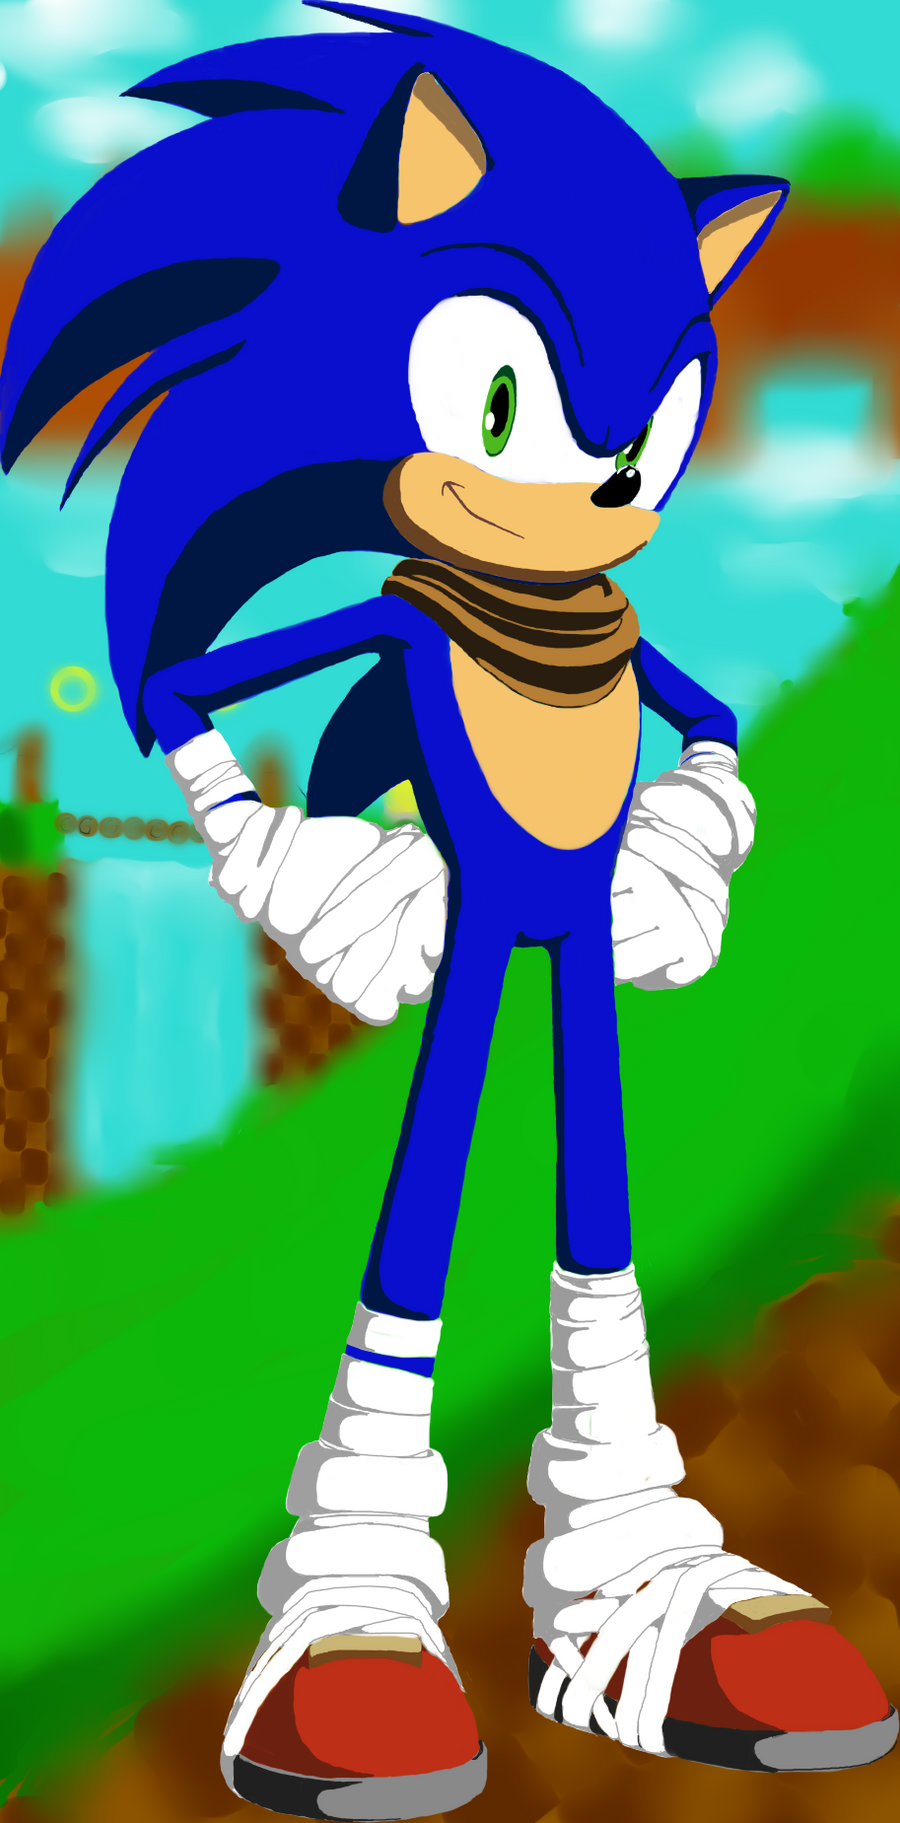 Sonic the Hedgehog (Sonic Boom style) by DillanMurillo on ...